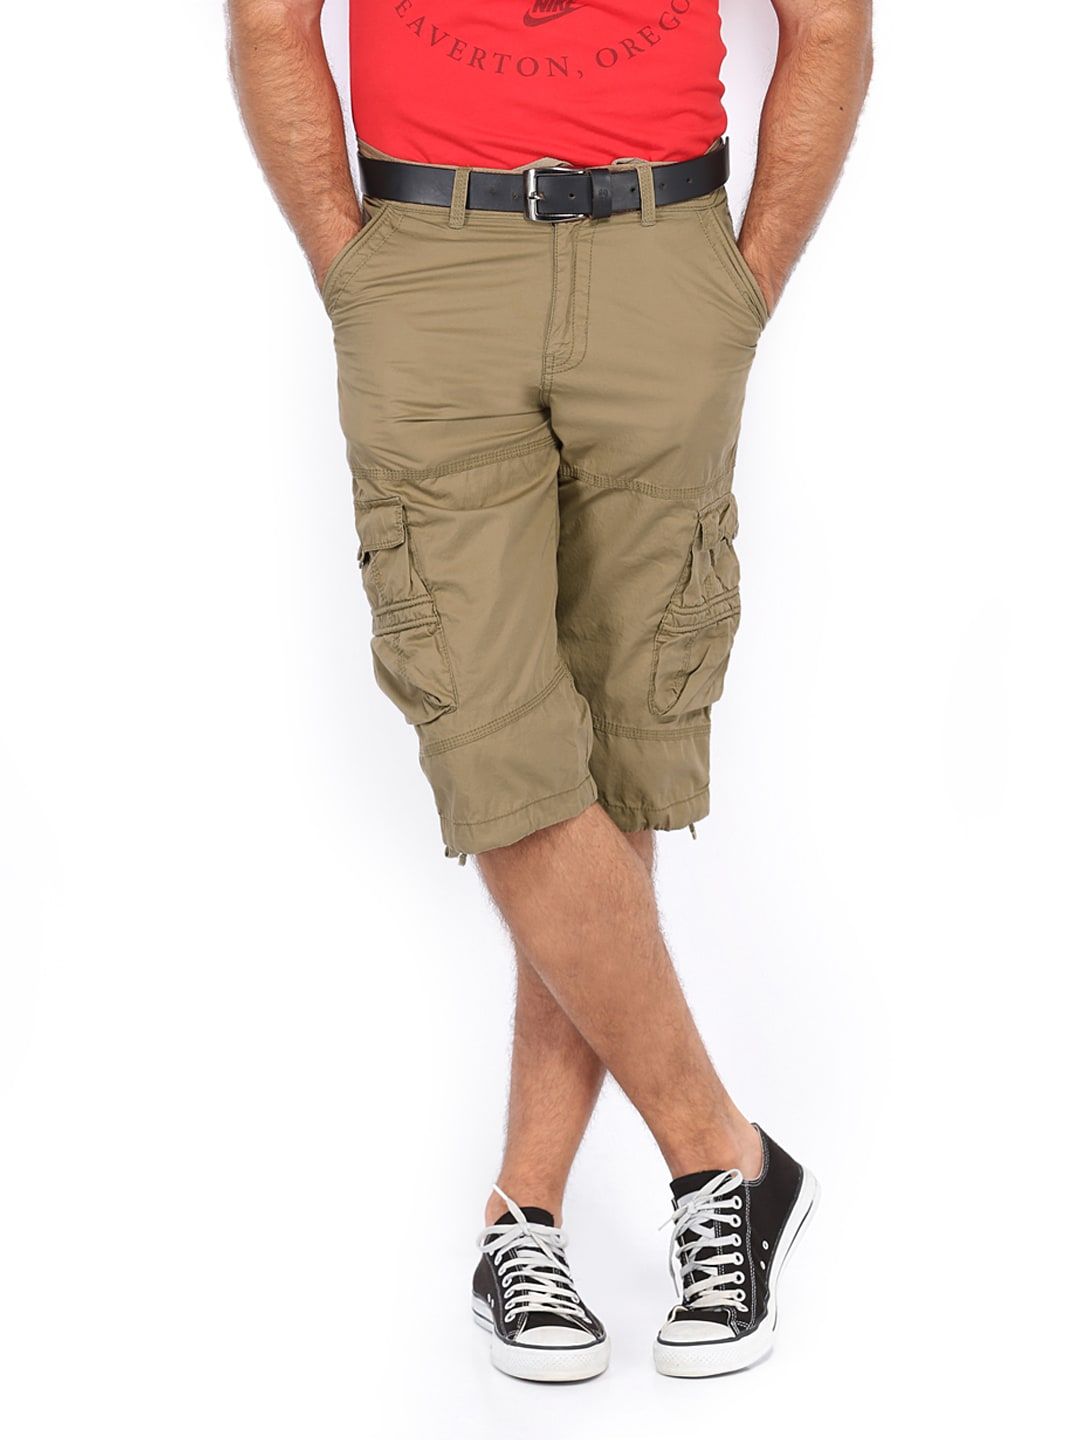 Men's Capris to Cotton - Feel the Fashion. With changing options, shorts for men capture the looks. The types such as men's 3 4 th shorts, men's capris, cargo and other styles give you great comfort in addition to looks. Denim shorts for men grasp your attitude, and most of them become your friends for the attitude you have.